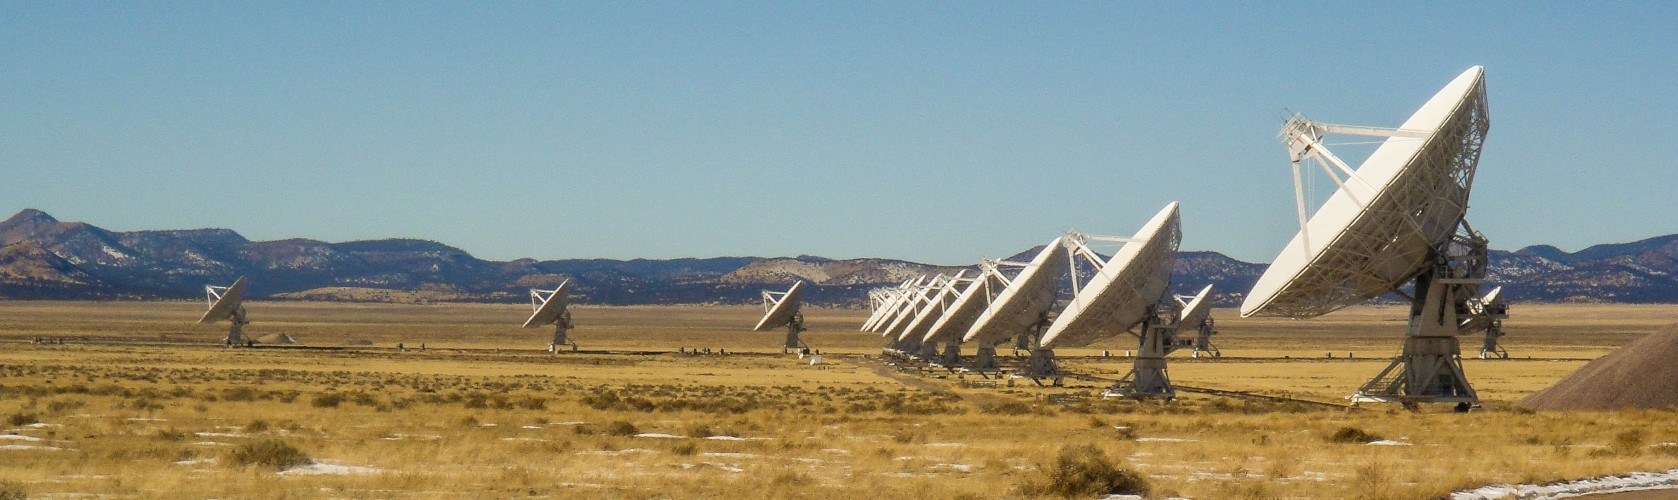 vla array